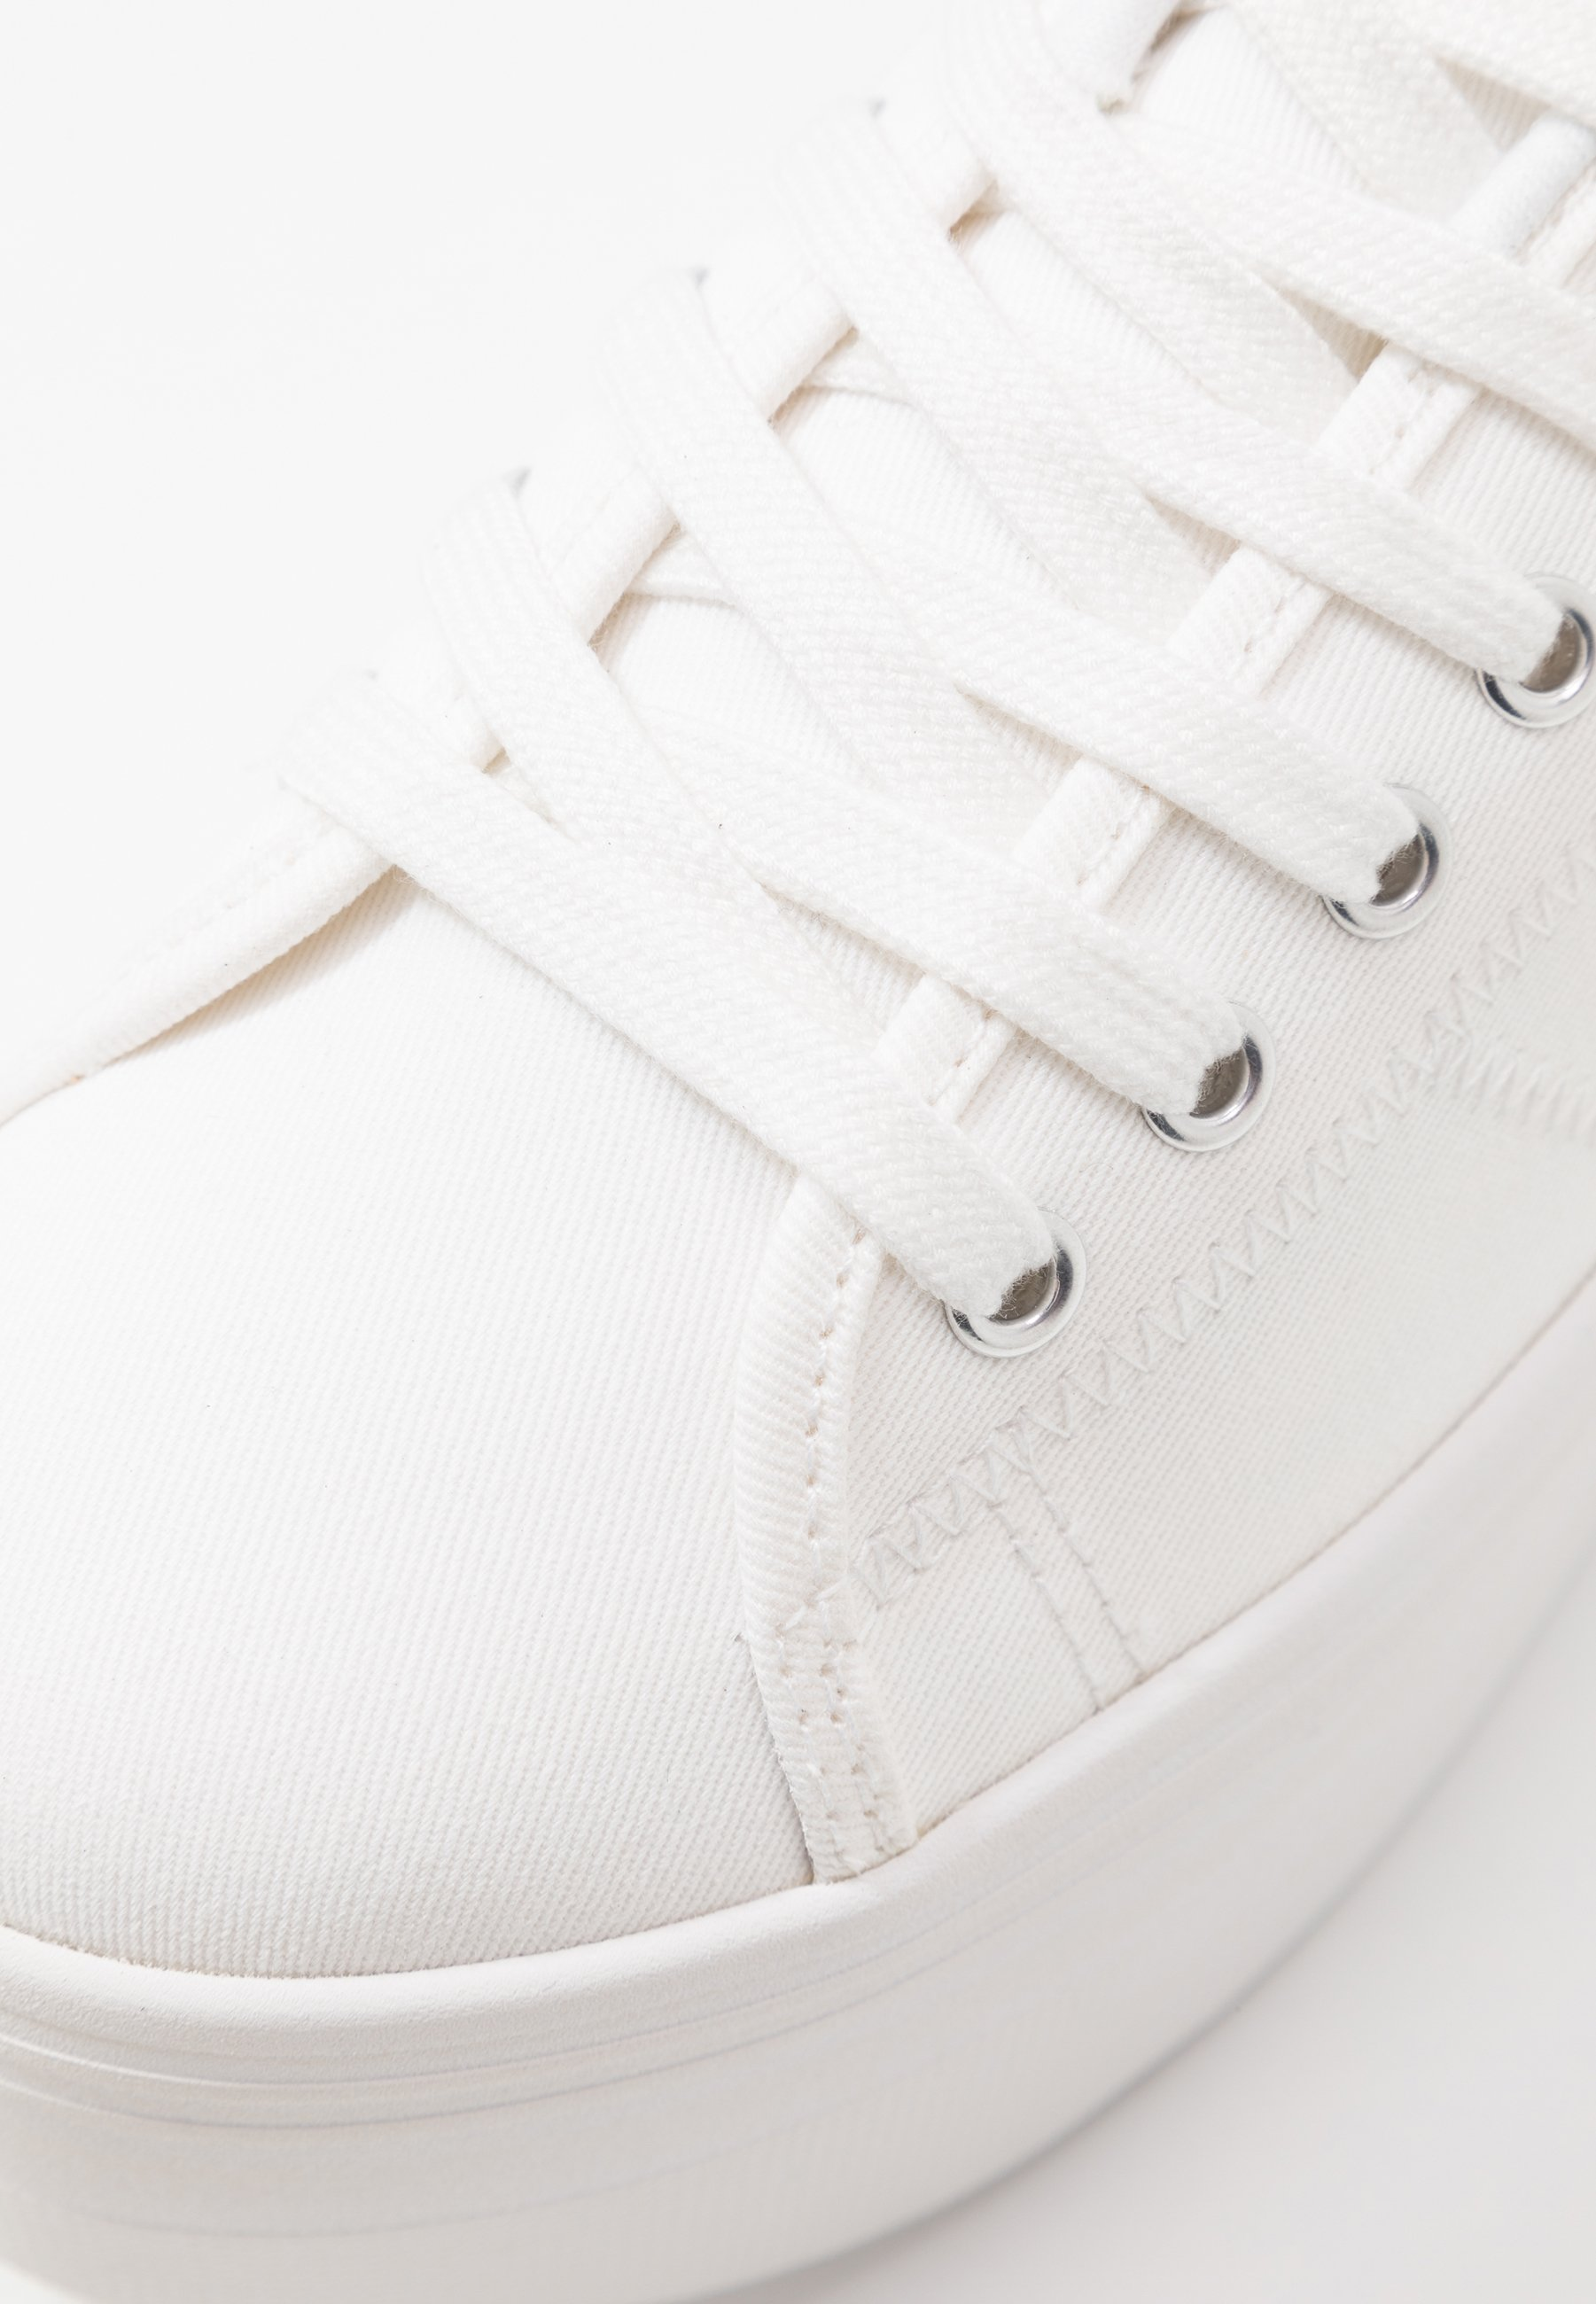 No Name Plato - Sneakers White Fox